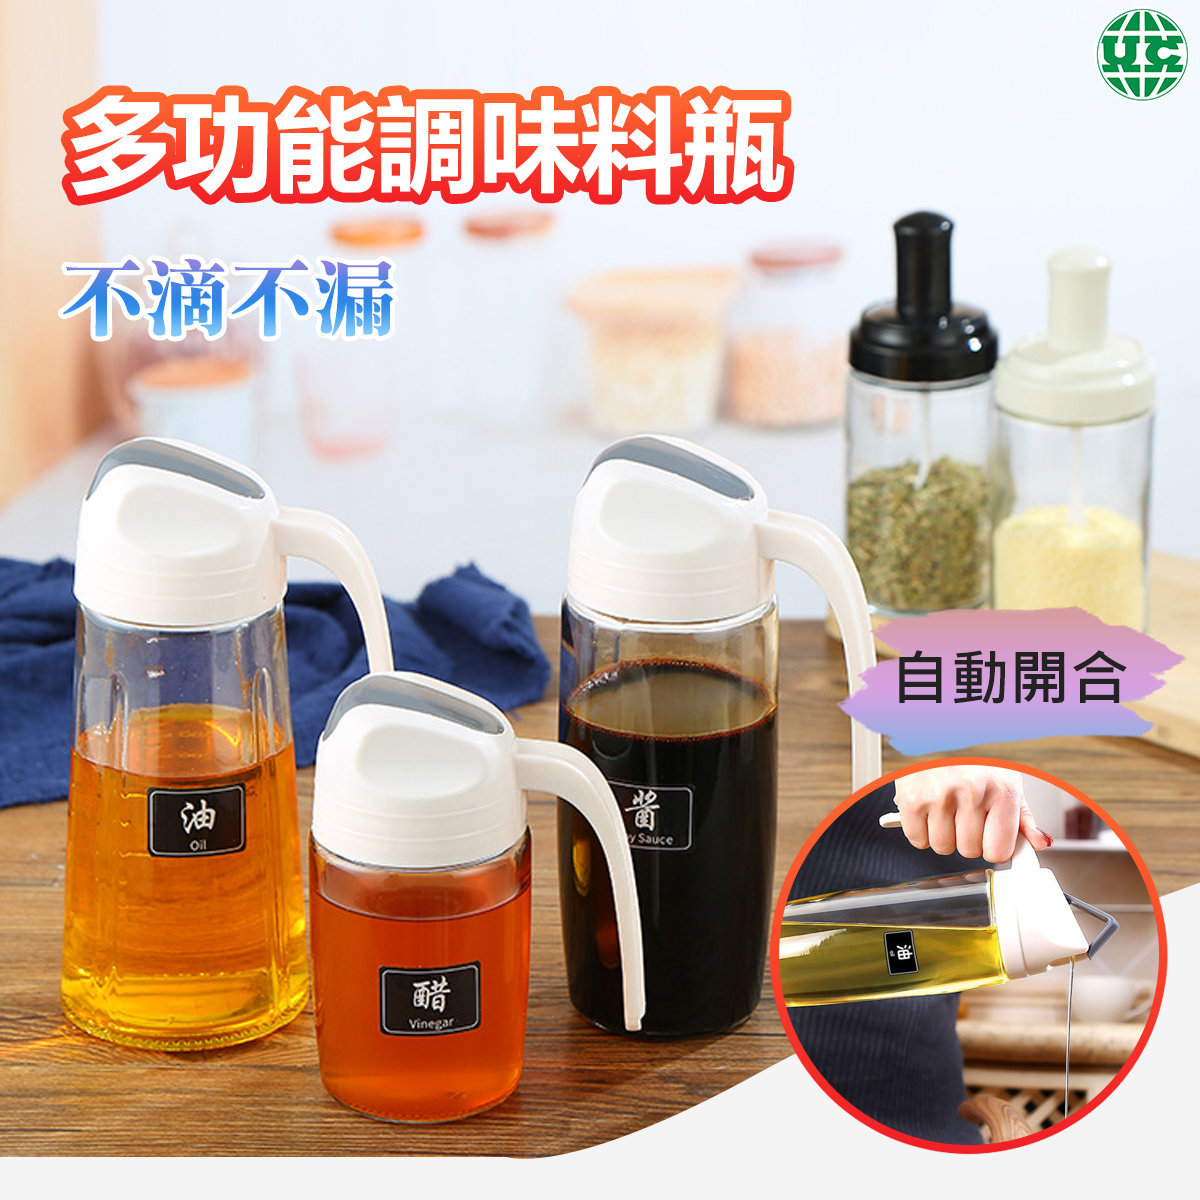 No drip or leak, automatic opening and closing oil pot, multi-function seasoning bottle-300ml